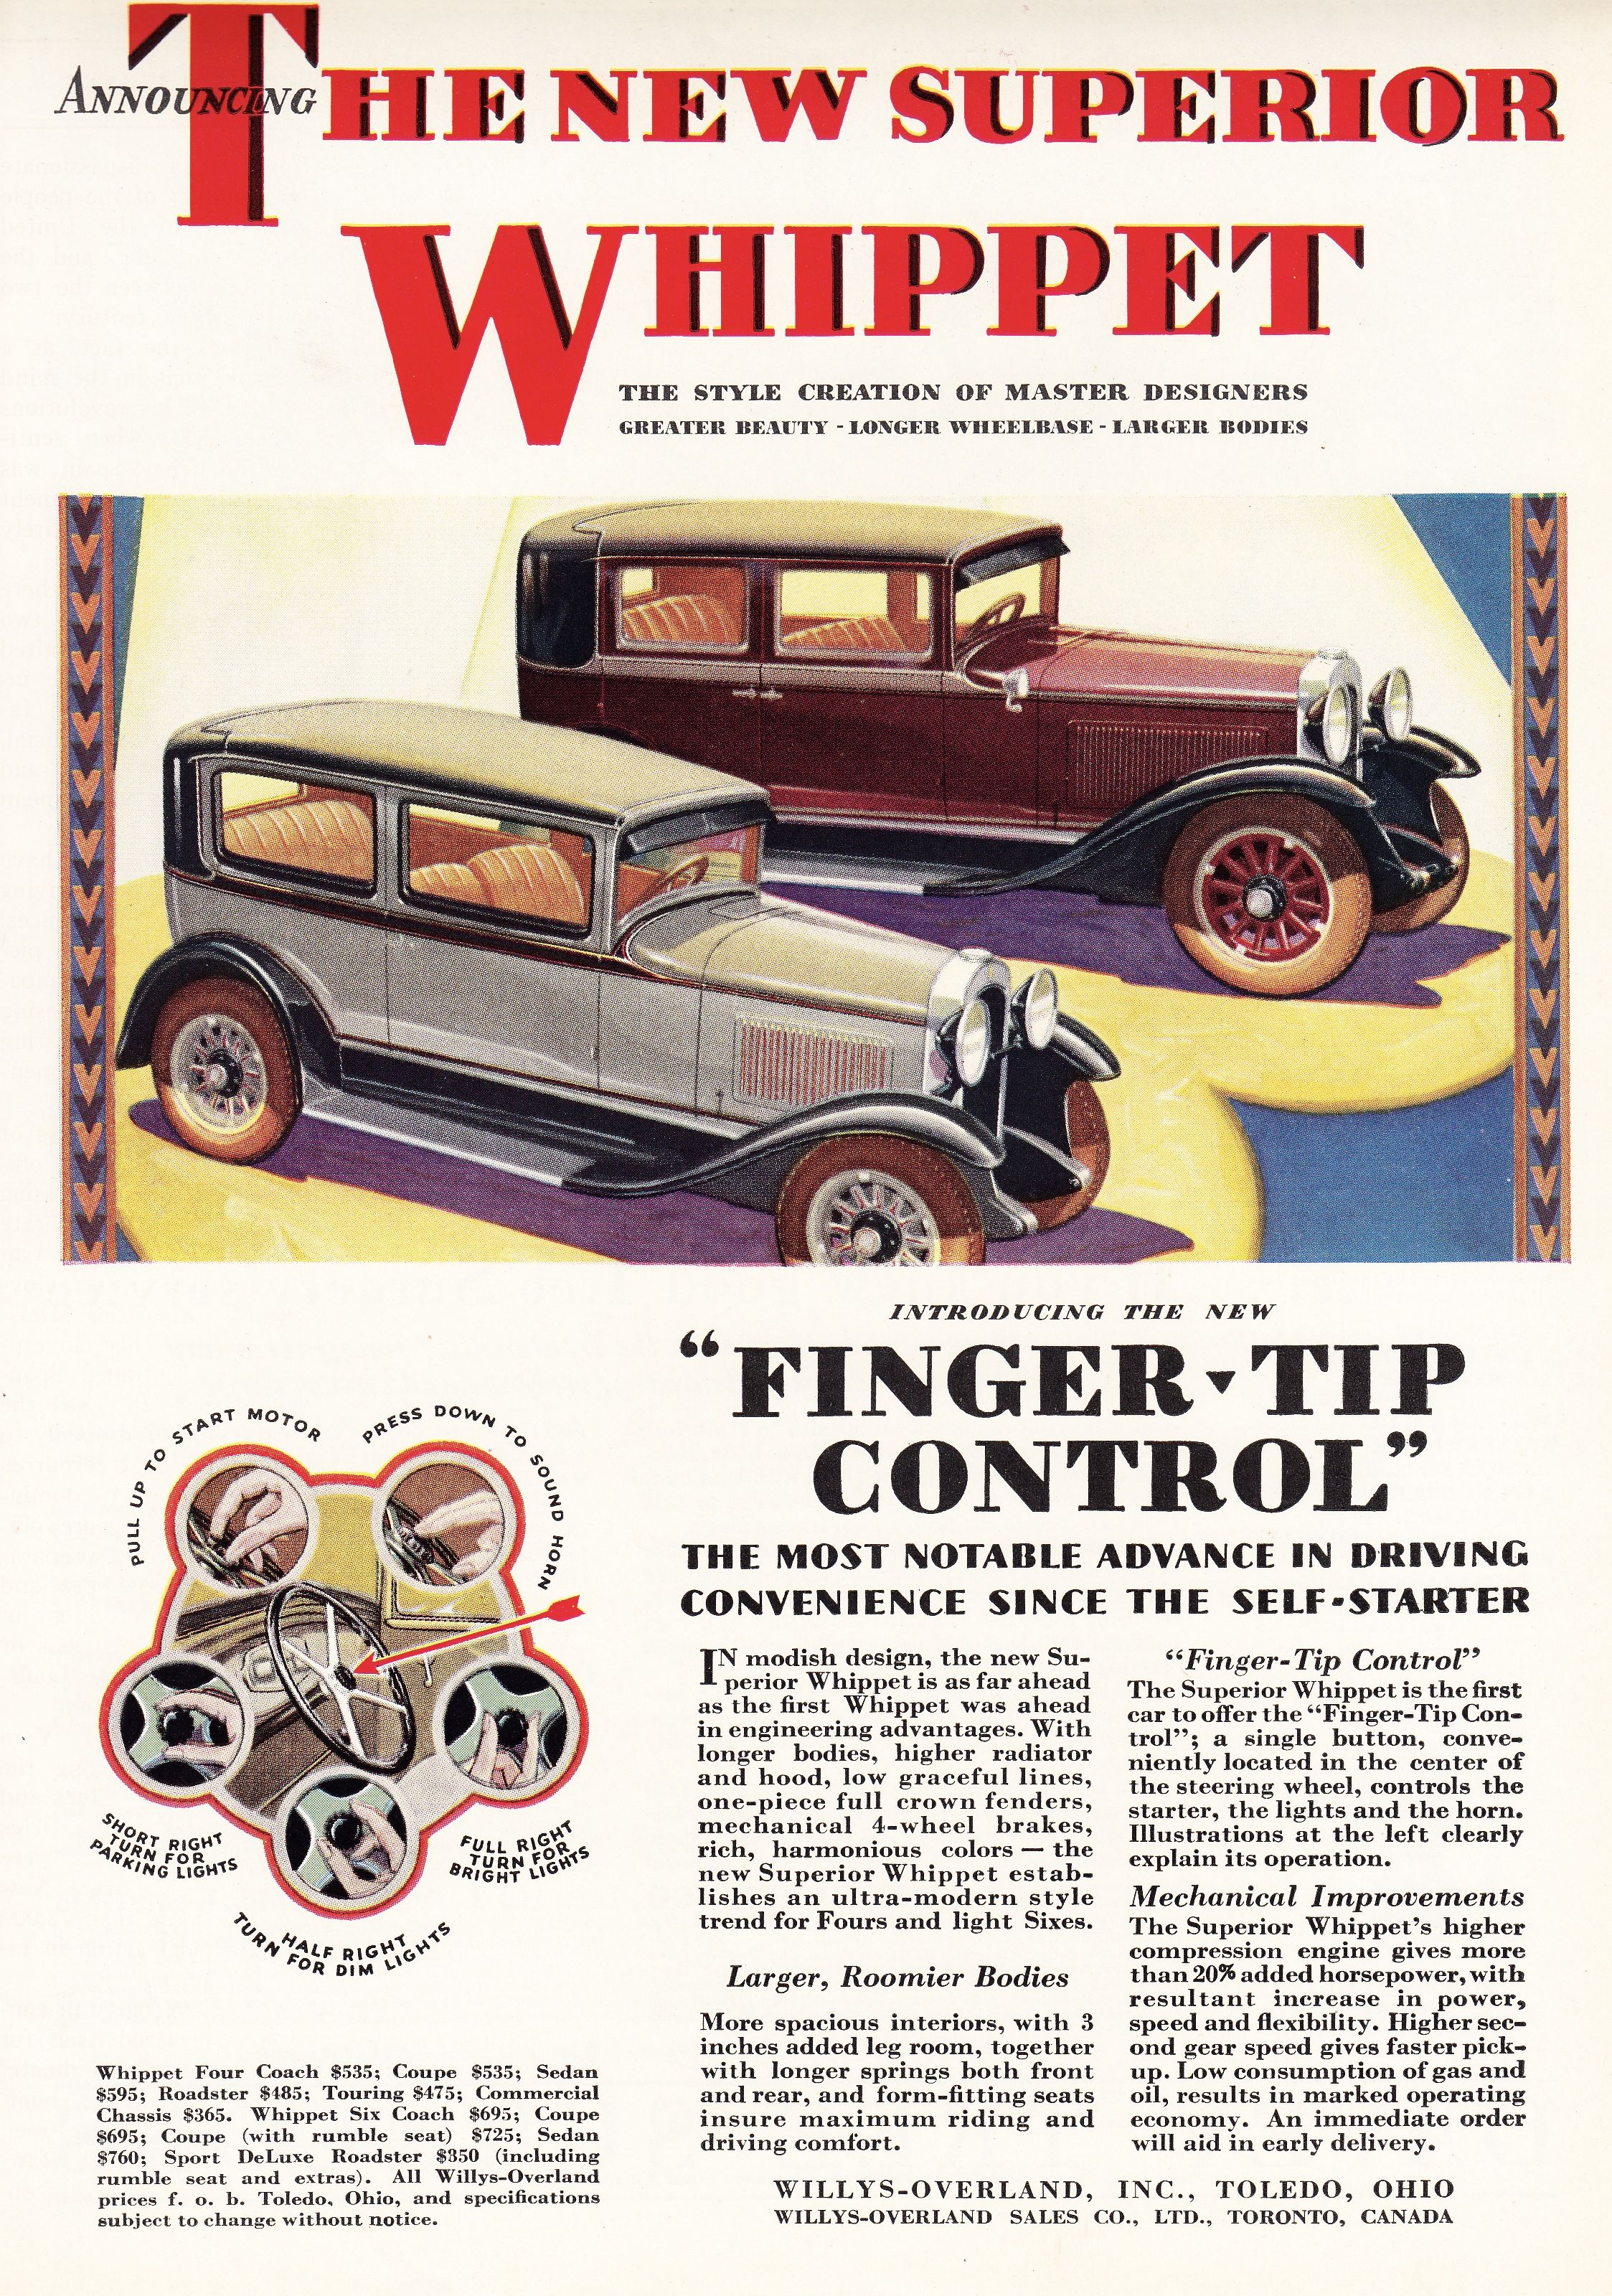 Willys Overland Whippet 1929 Vintage Cars Whippet Automobile Advertising